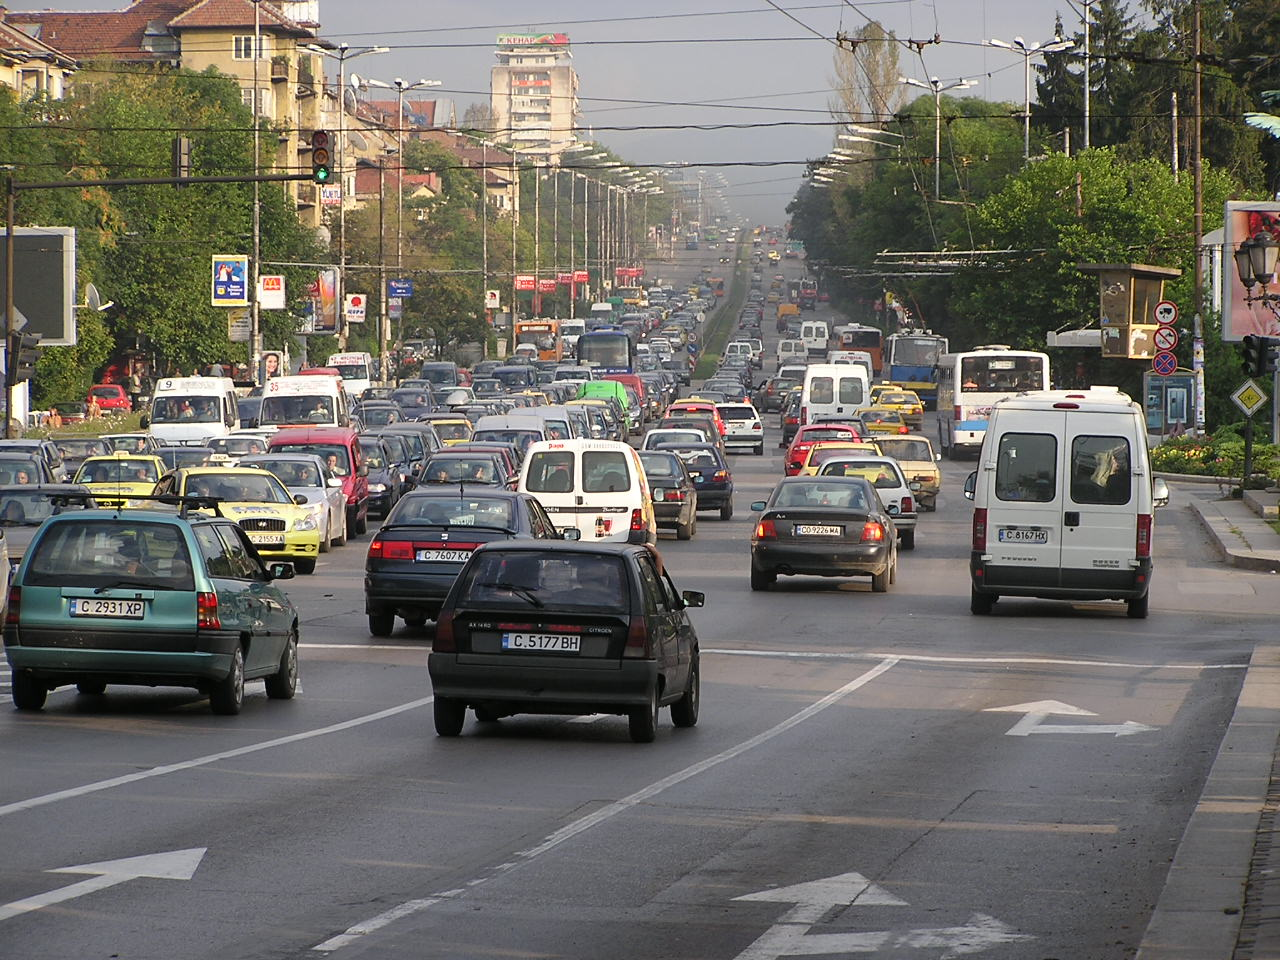 Sofia: Significantly Lower Levels of Nitrogen Dioxide Due to the Lower Traffic